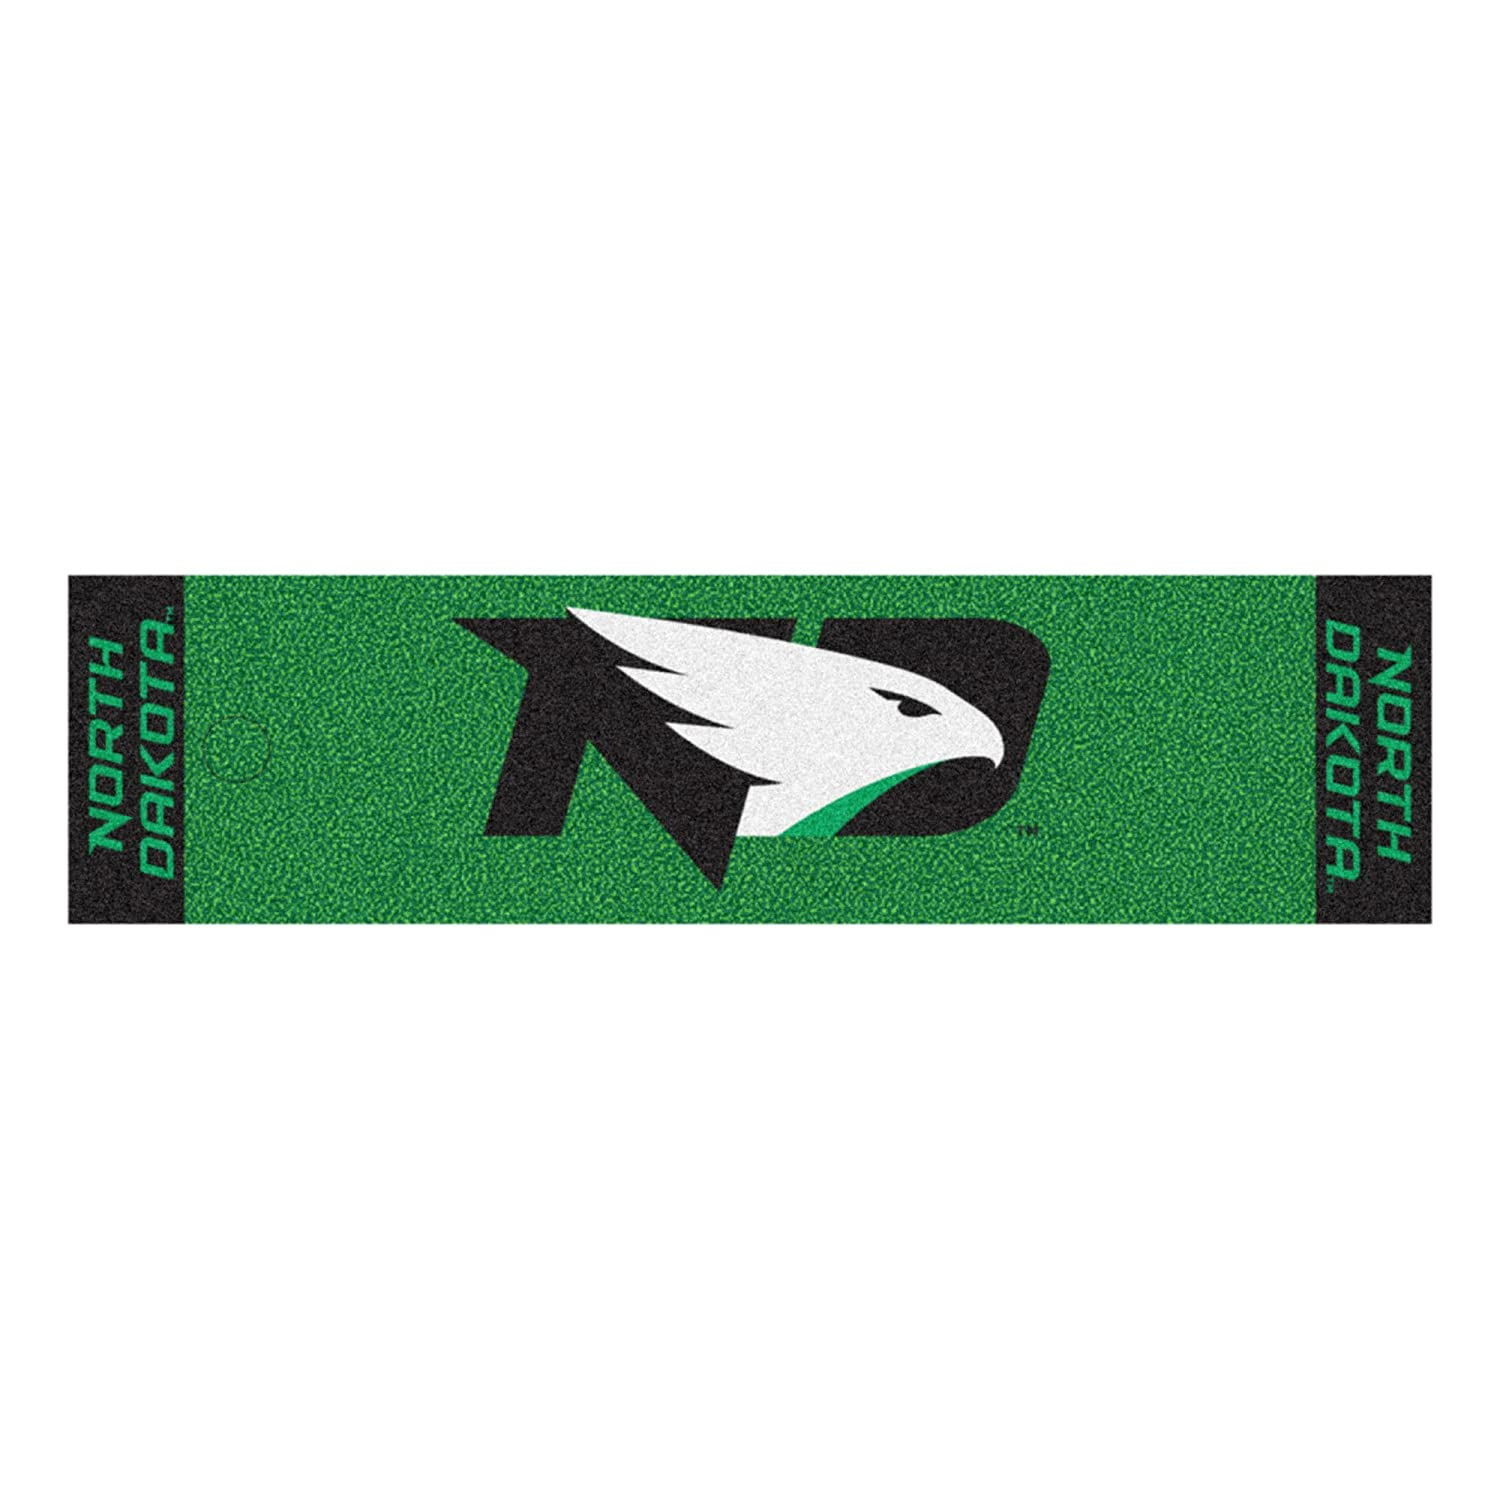 NCAA University of North Dakota Fighting Hawks Puttingグリーンマットゴルフアクセサリー   B07F1VFNJM